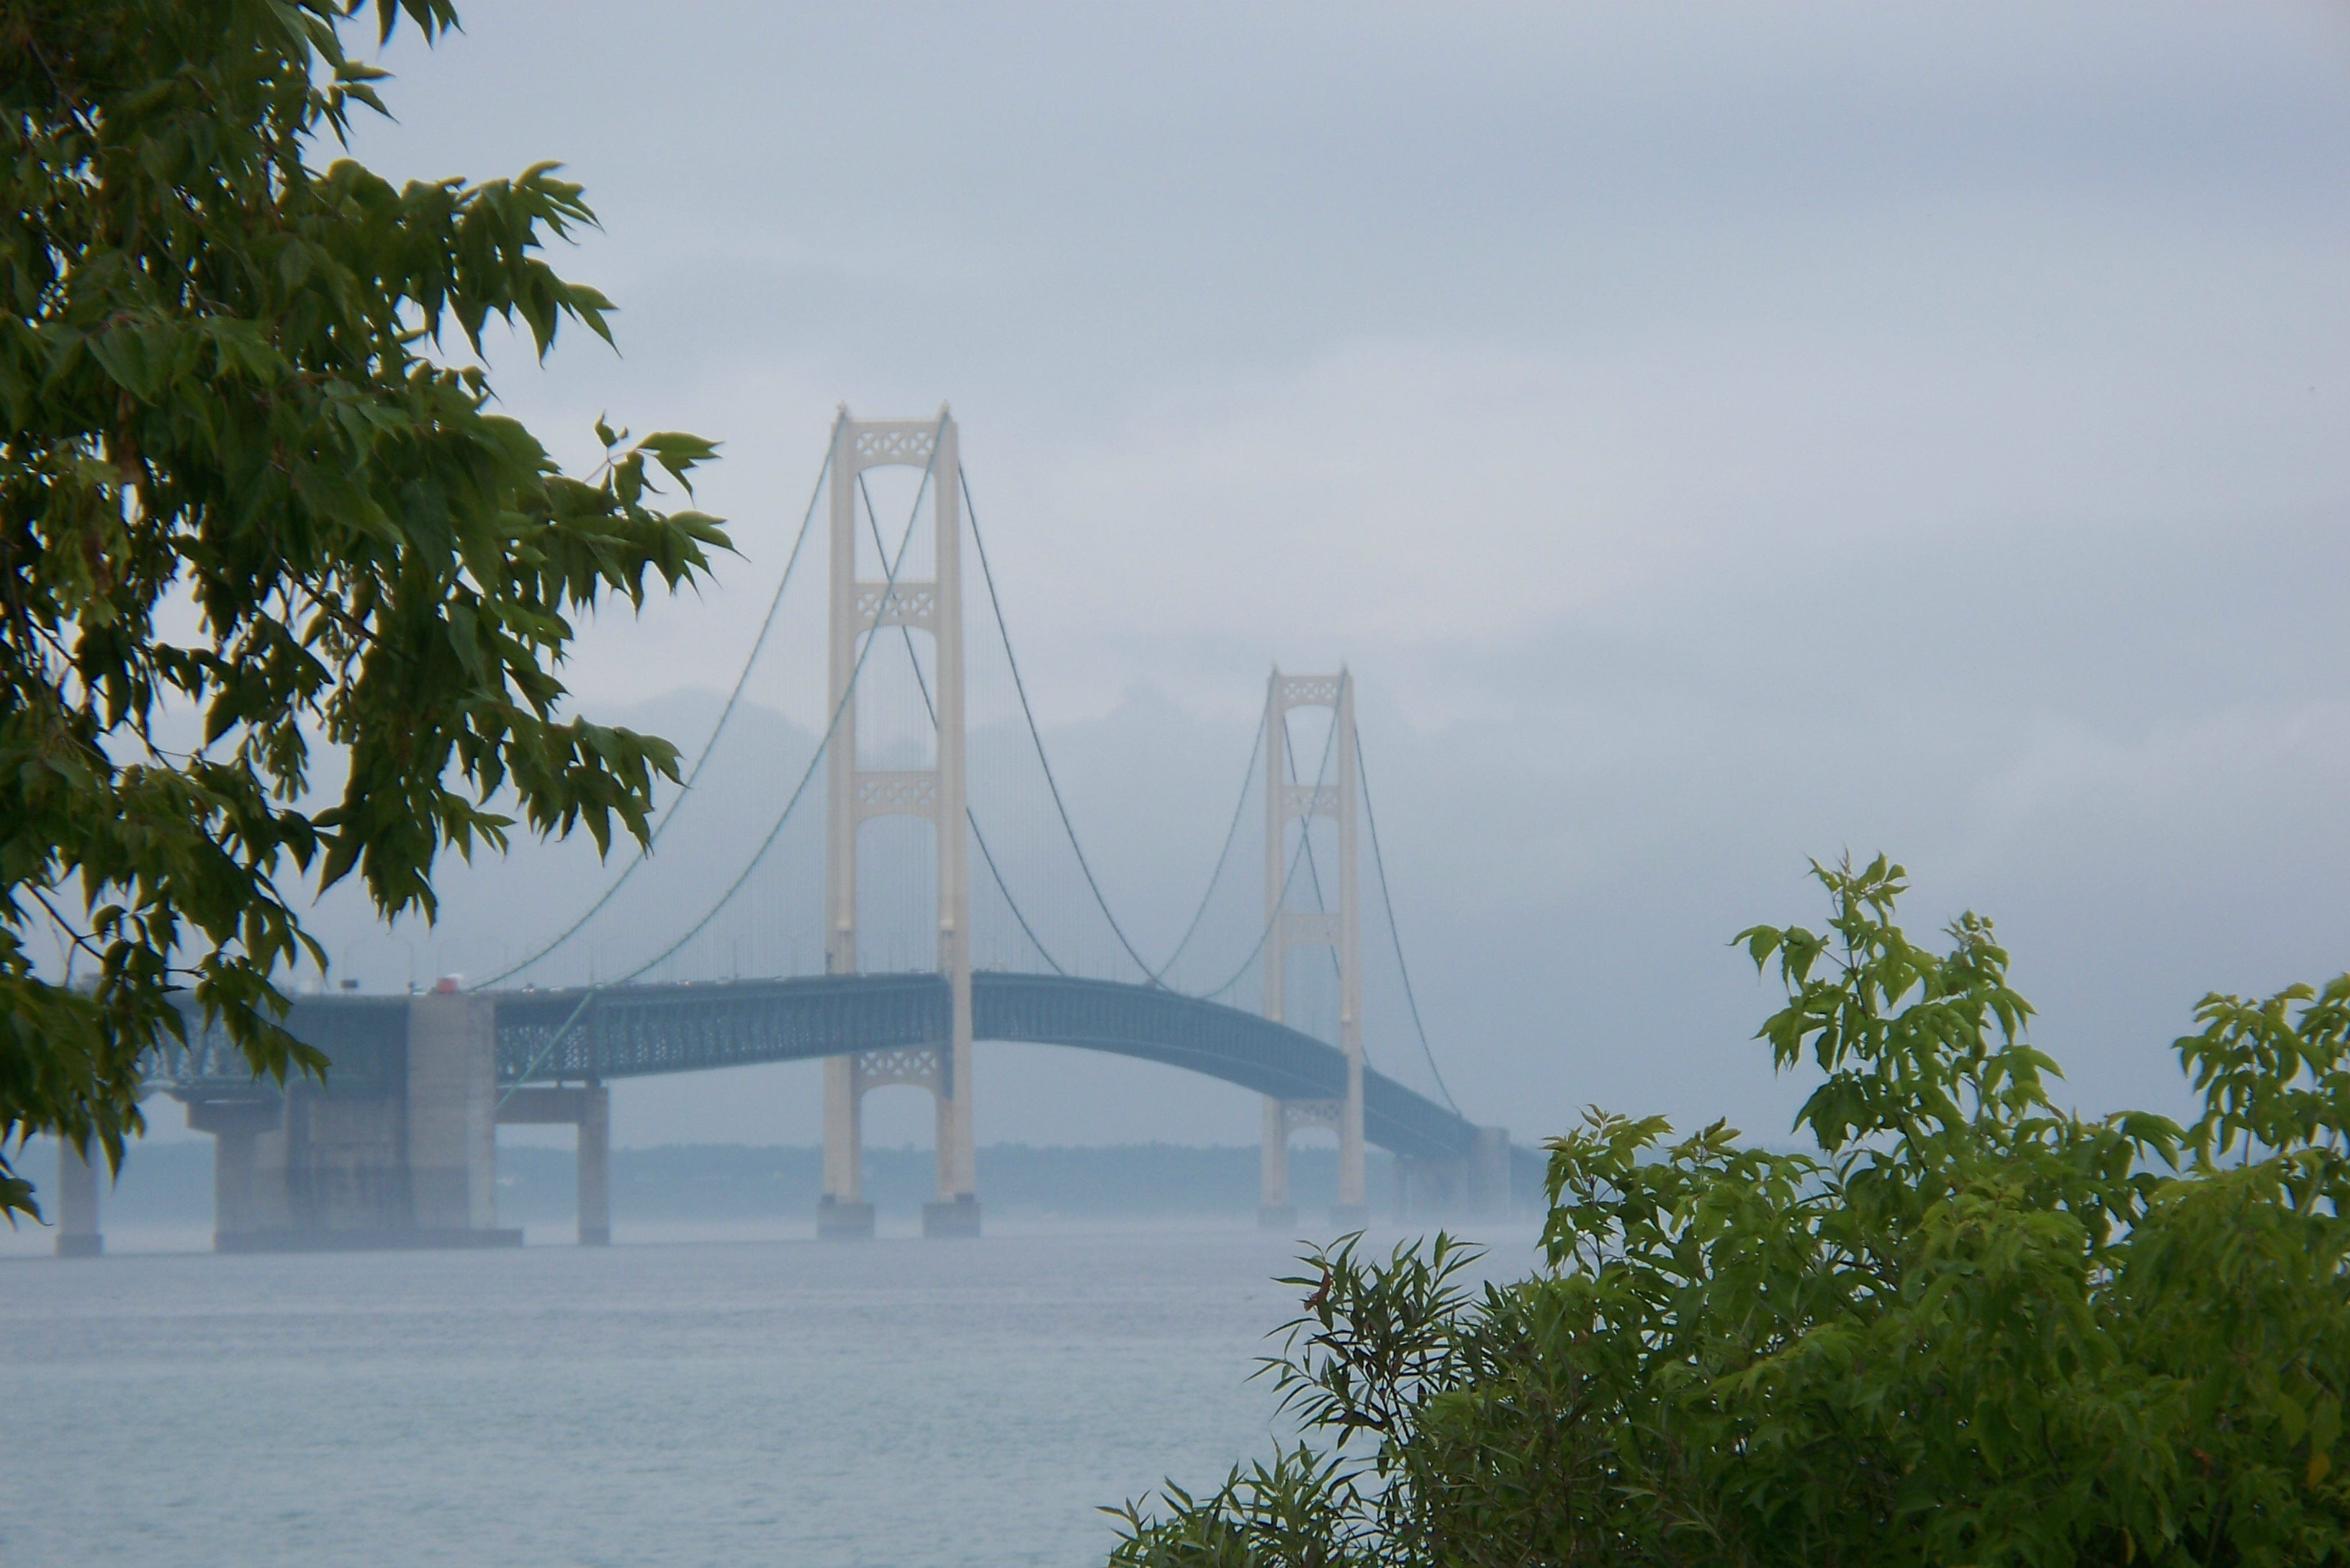 At five miles long, the Mackinac Bridge is the third-longest suspension bridge in the world.